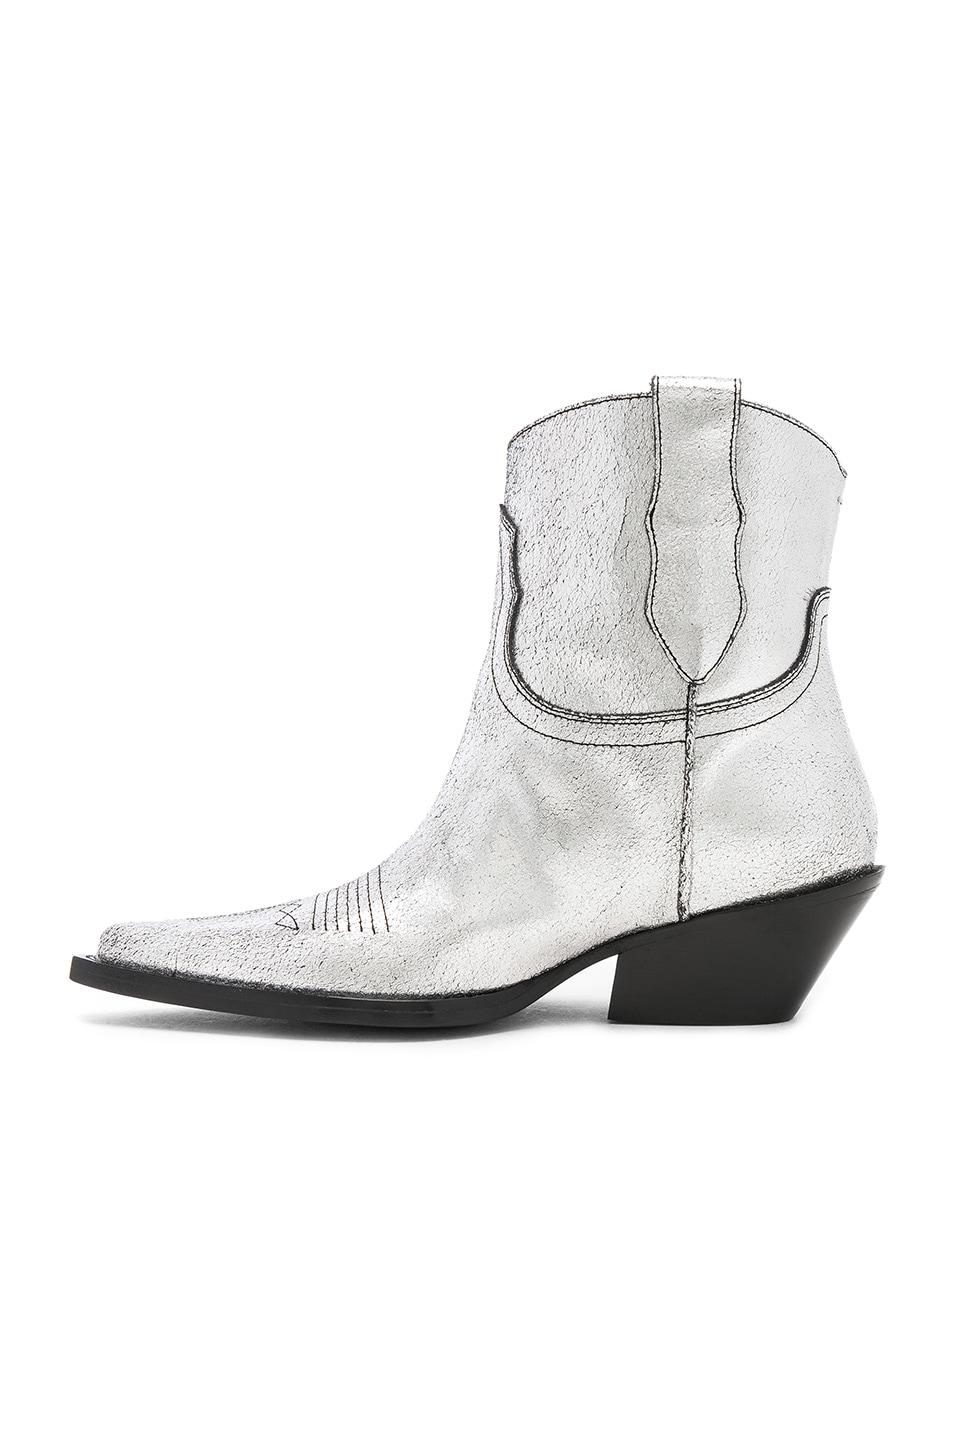 Image 5 of Maison Margiela Metallic Short Western Boots in Silver Birch & Black